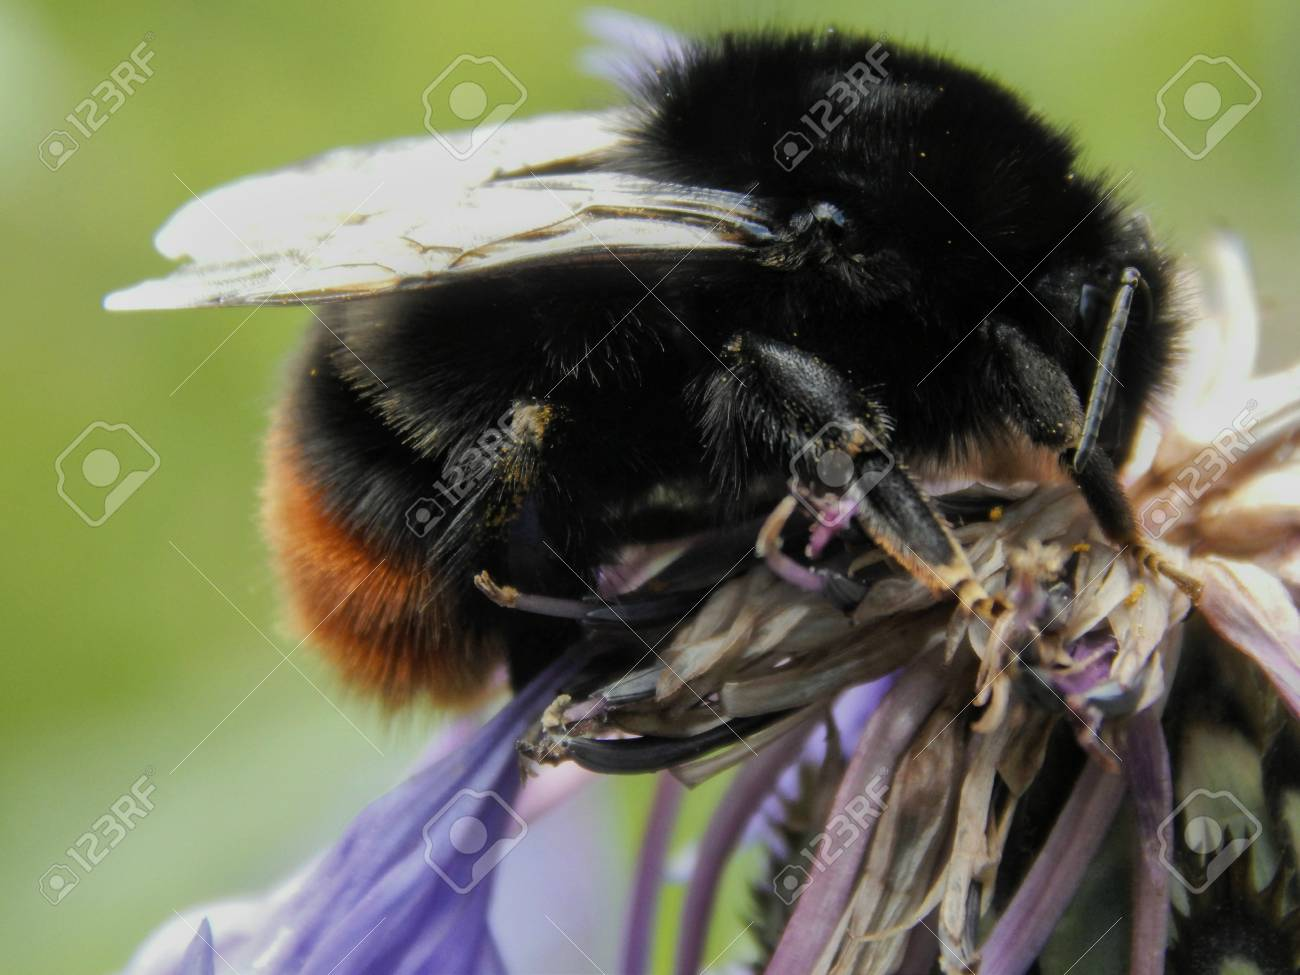 Black Bumble Bee >> Big Black Bumble Bee On Flower Close Up